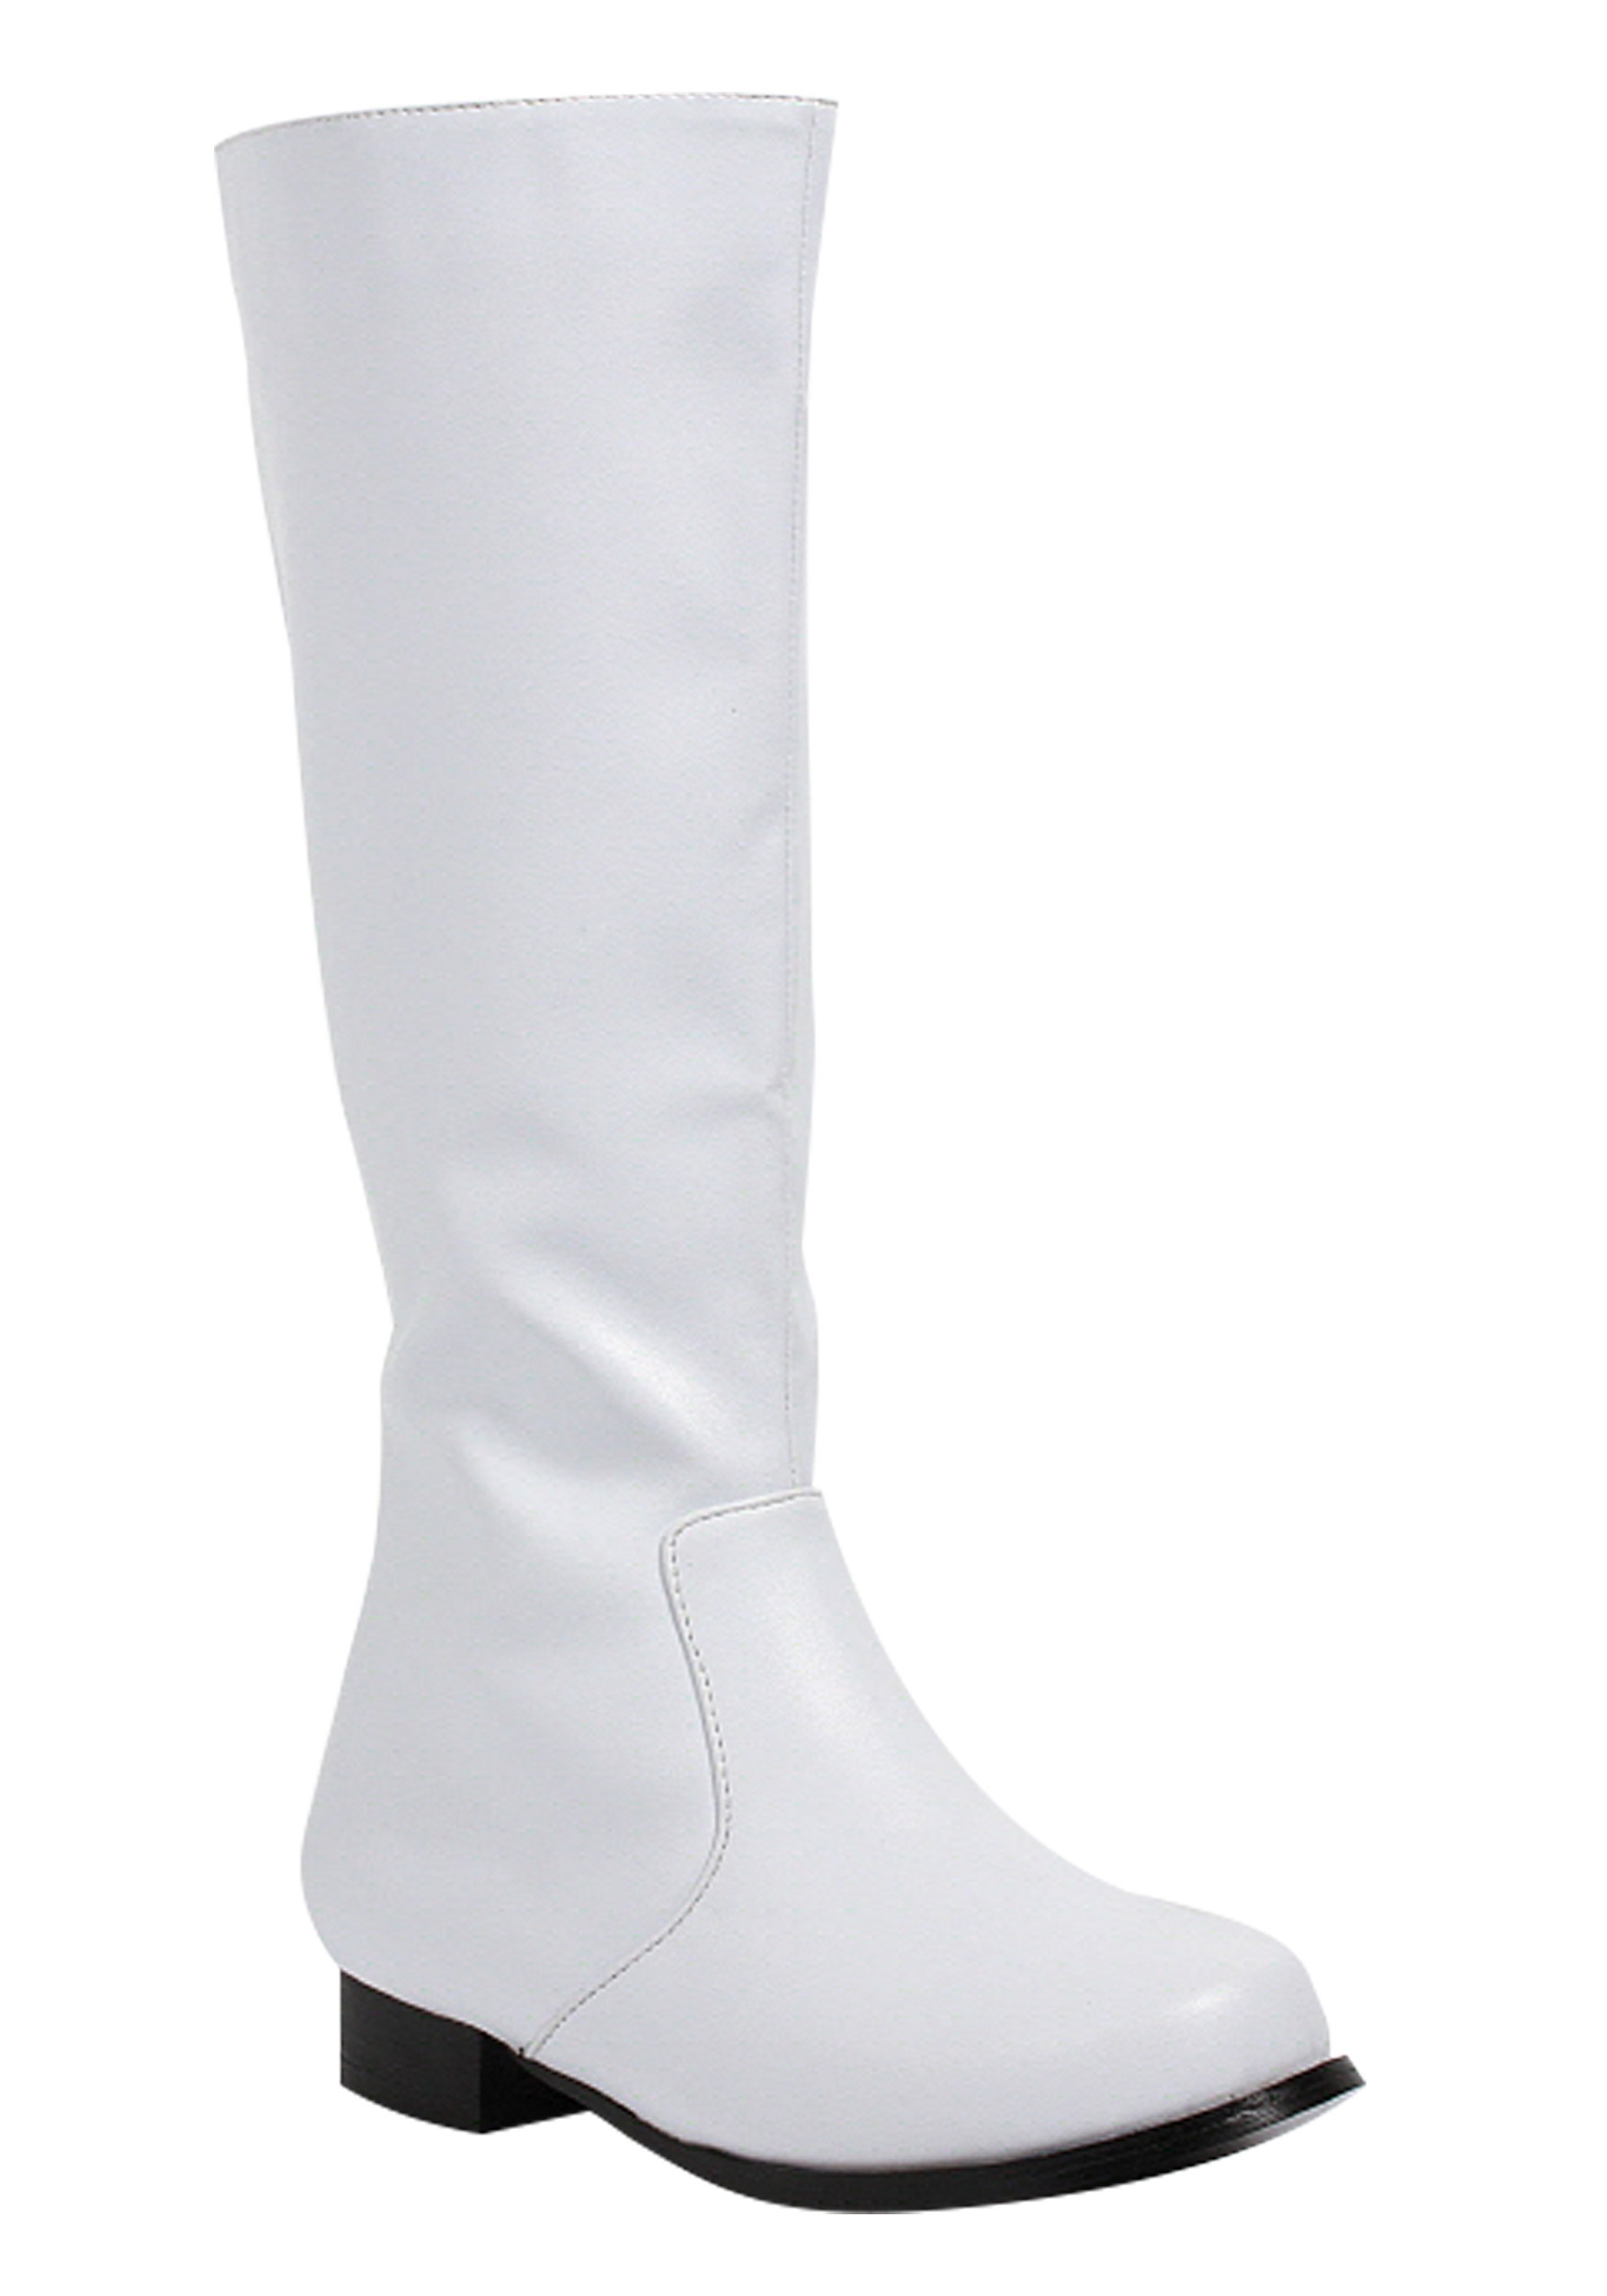 white boots boys white costume boots ybicsqg